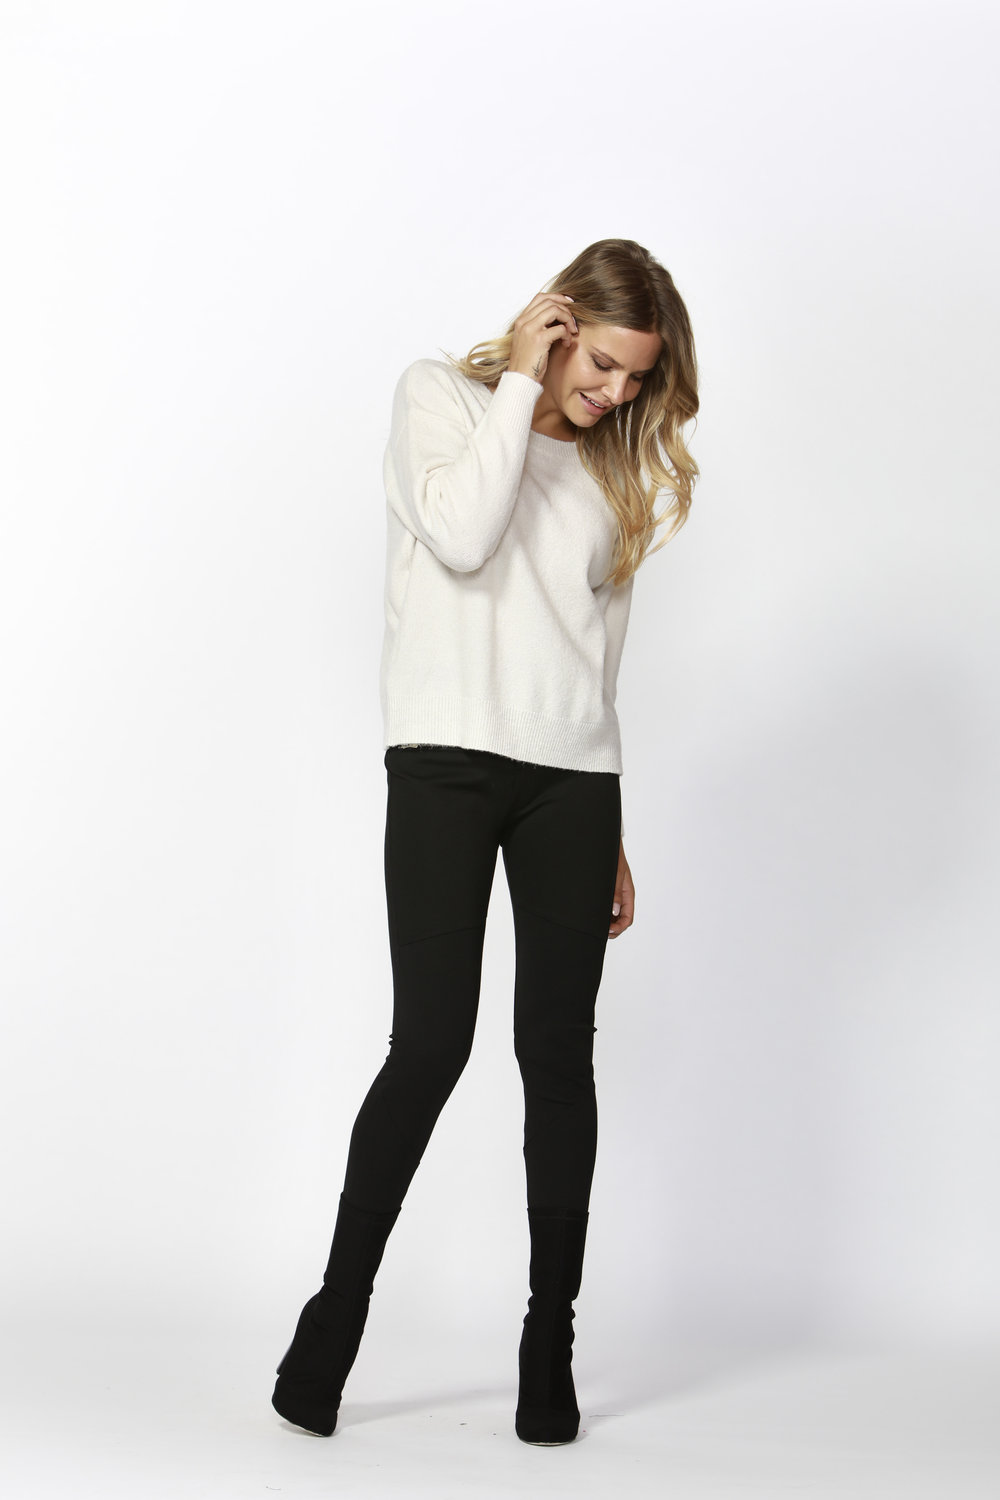 Snuggly Winter Knit (Coconut)  - $59.90